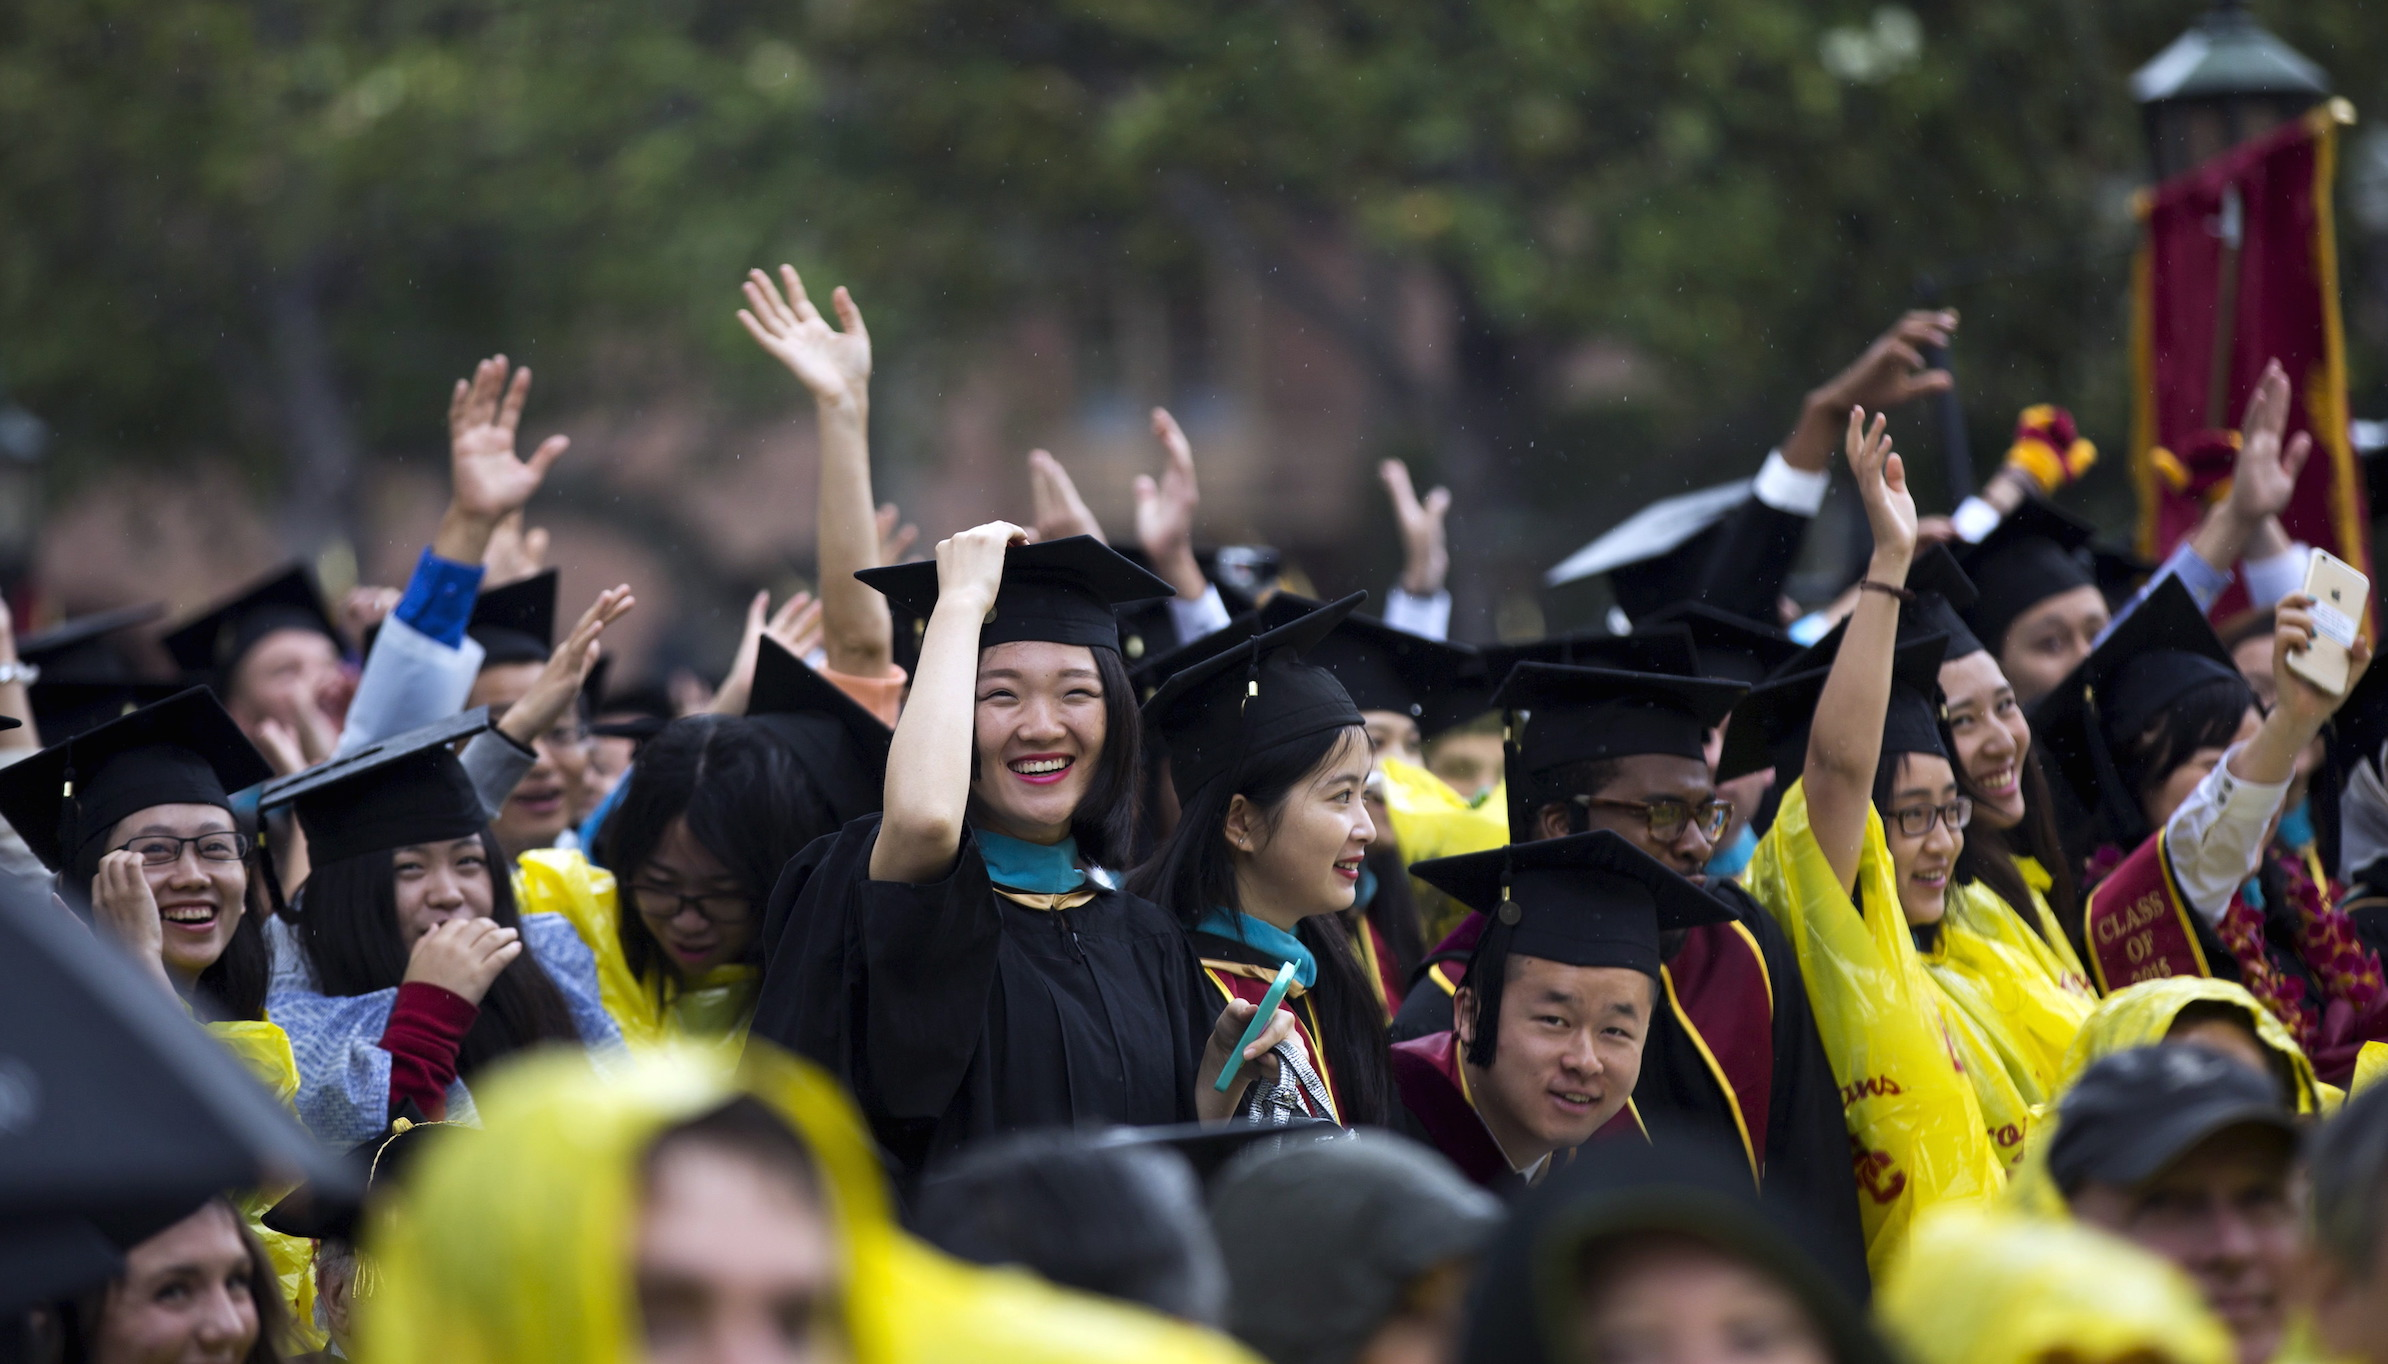 Graduating students cheer during USC's Commencement Ceremony at University of Southern California in Los Angeles, California May 15, 2015. REUTERS/Mario Anzuoni - RTX1D635